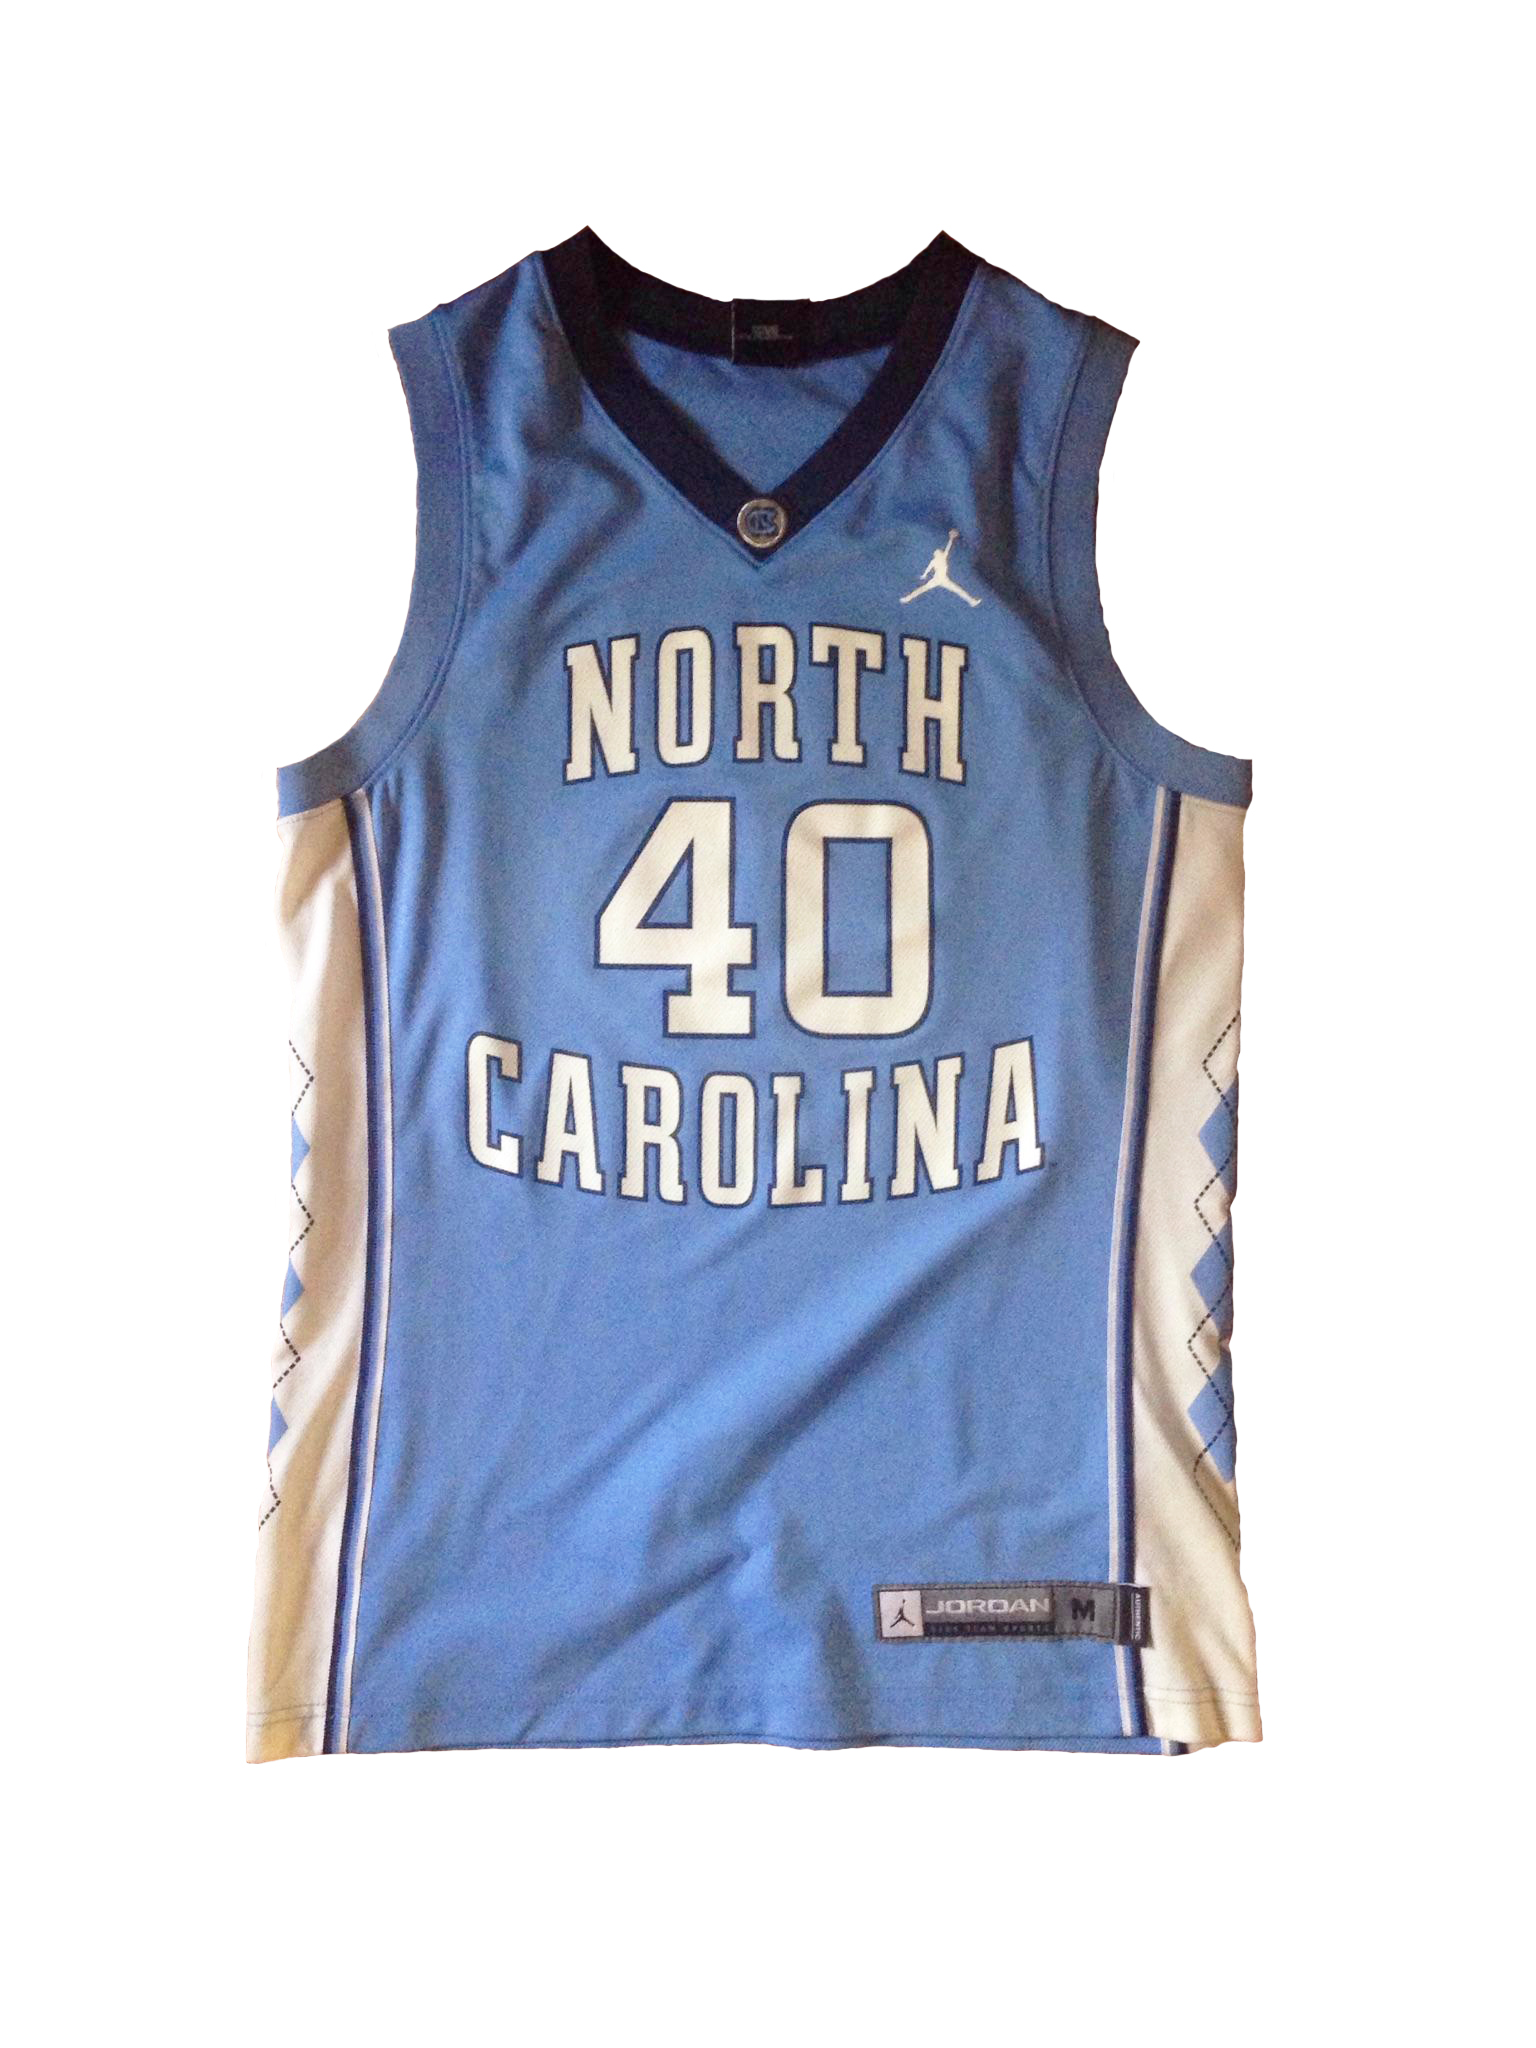 Anna's Lucky Jersey, the honored #40, once sported by late 90s/early 2000s shooting guard Joseph Forte and recent fan favorite Harrison Barnes